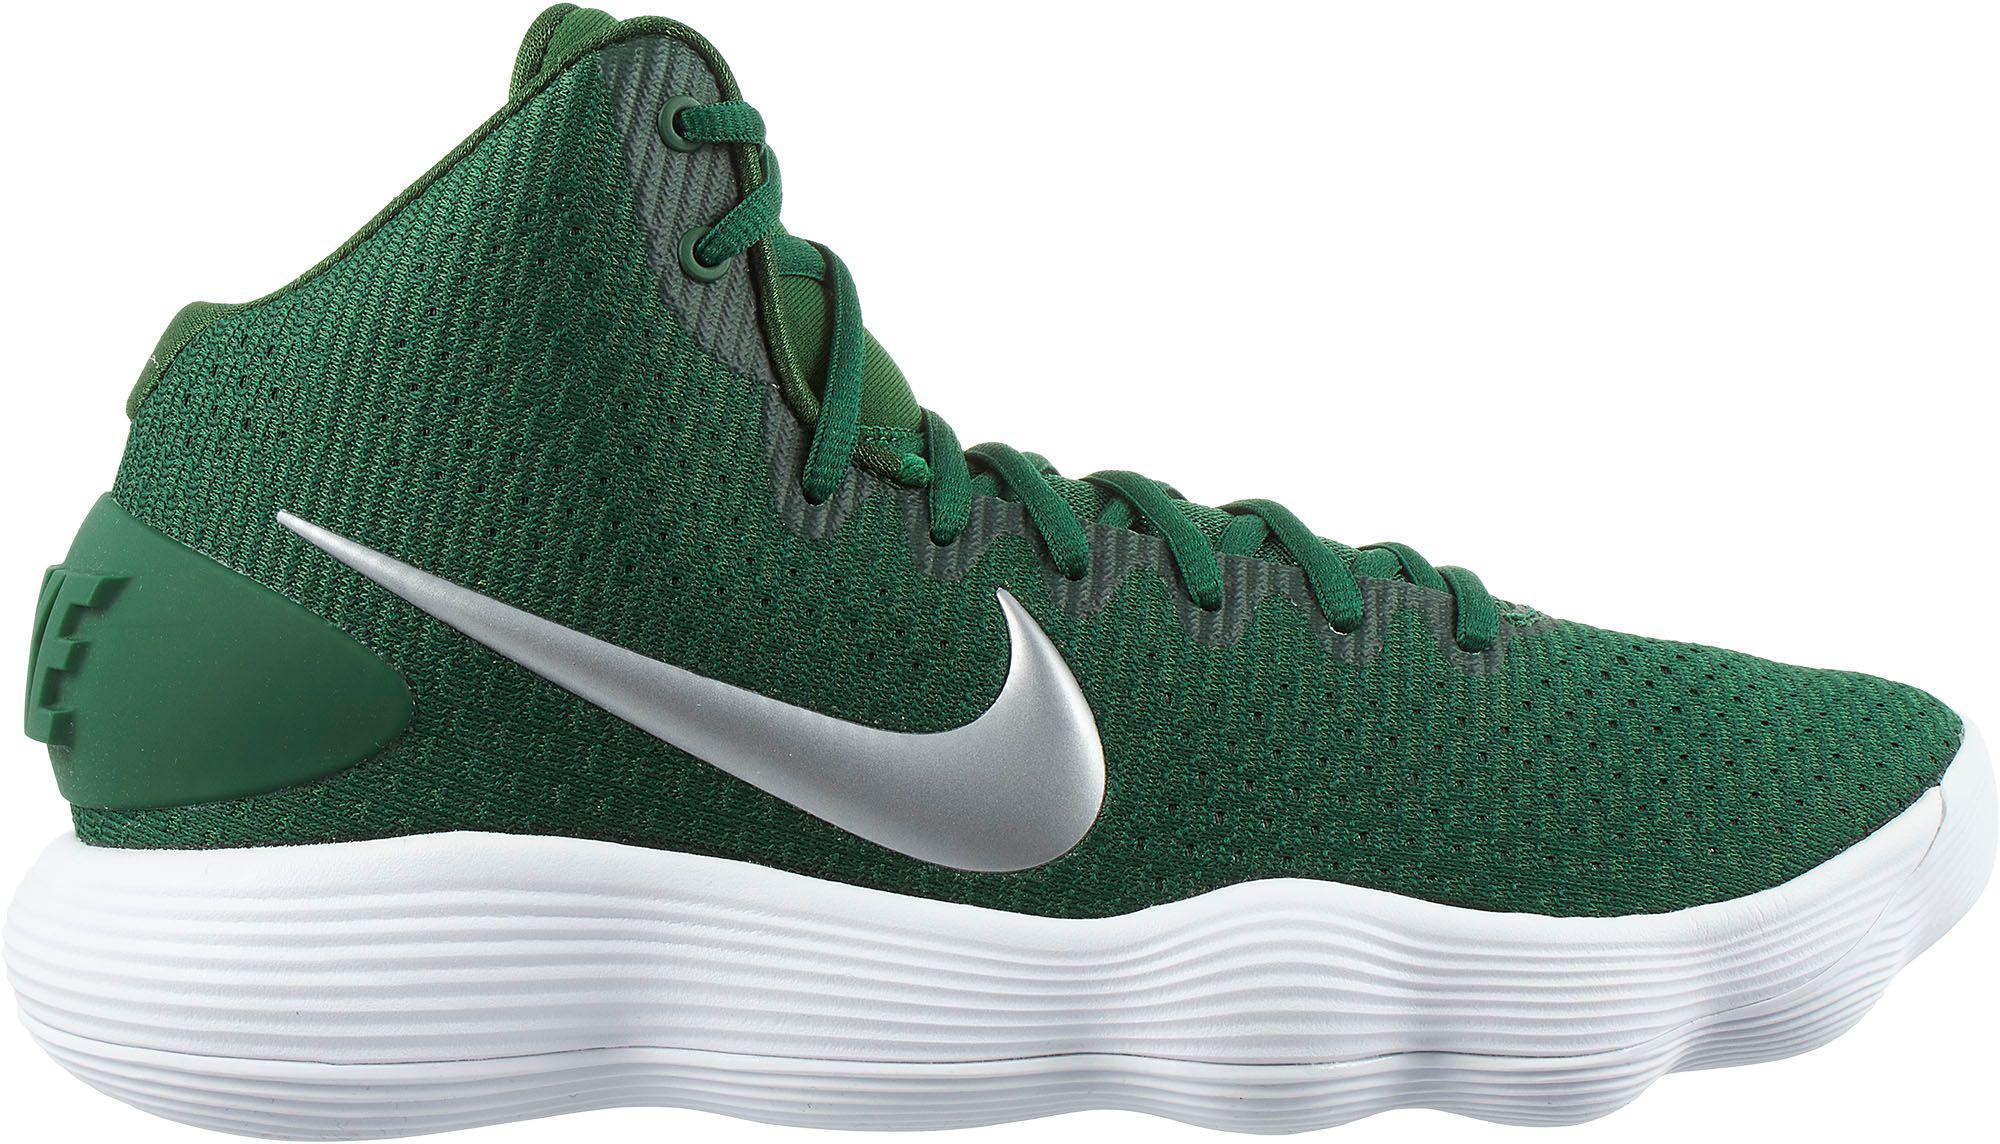 29b6e4d0927b Nike React Hyperdunk 2017 Basketball Shoes in Green for Men - Lyst